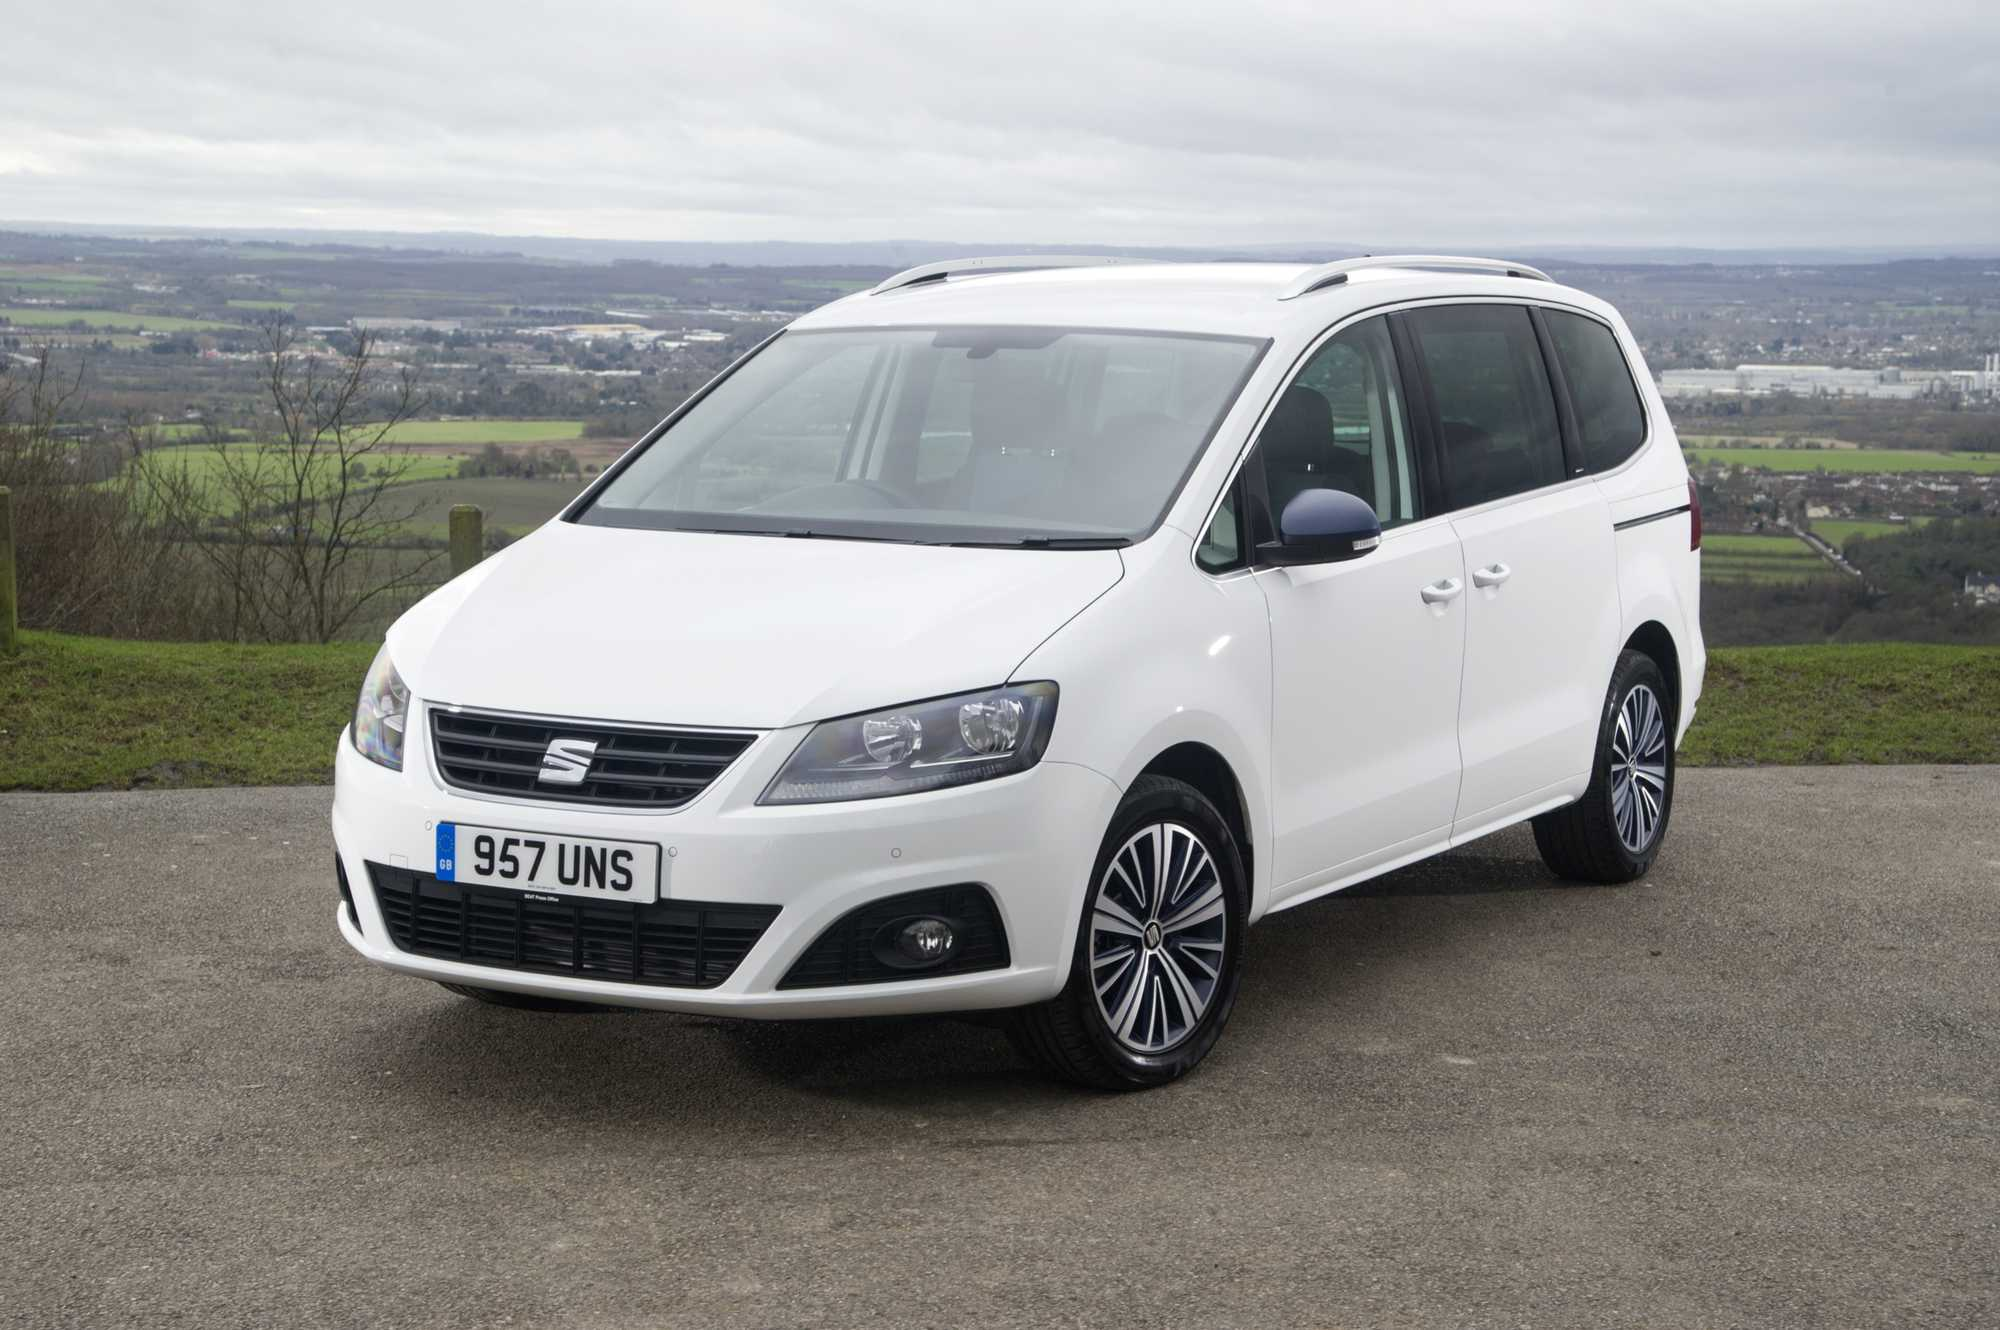 seat alhambra mpv review car keys. Black Bedroom Furniture Sets. Home Design Ideas